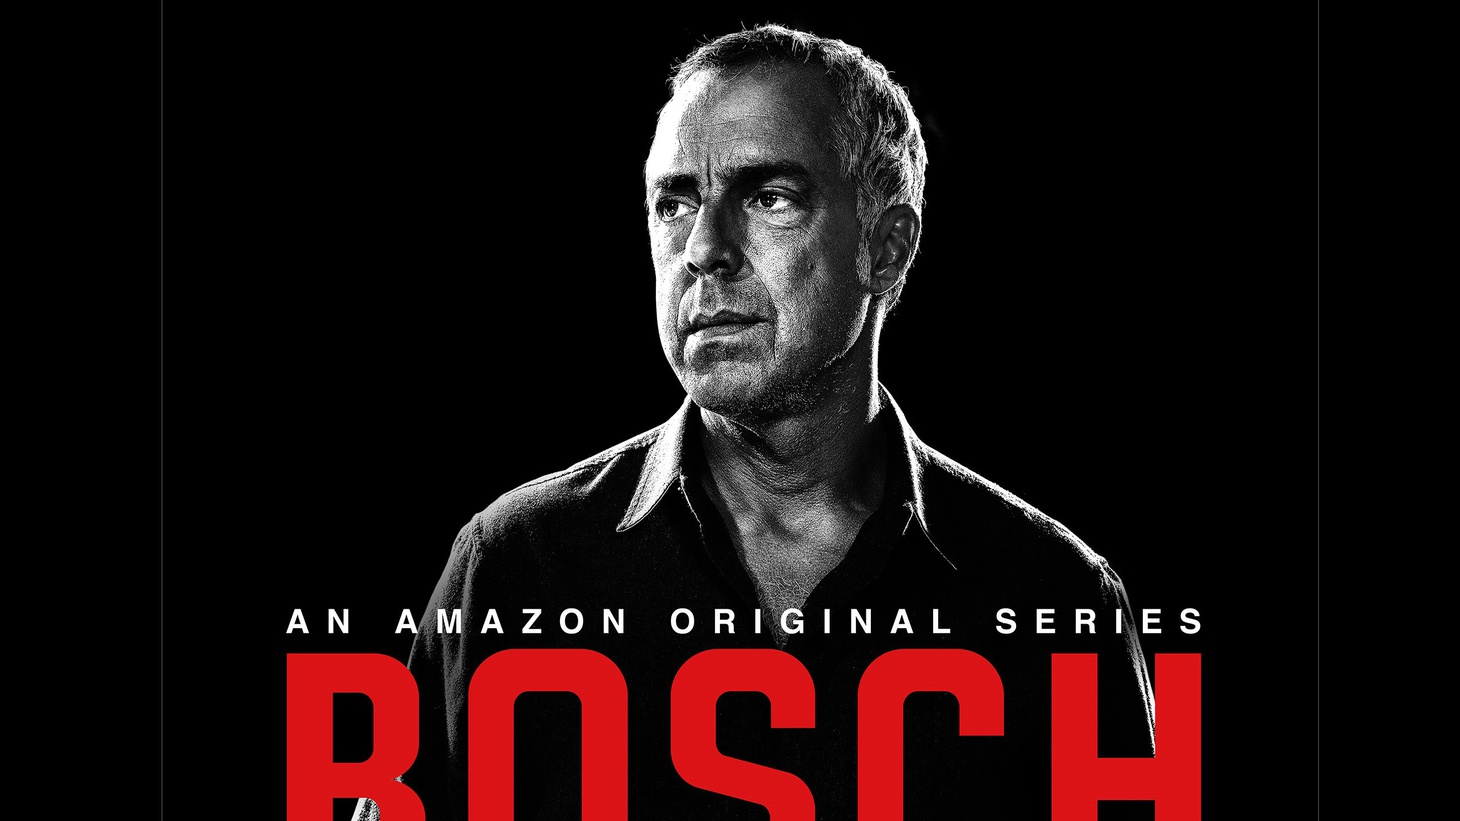 Author Michael Connelly sold the movie rights to his most famous character, Detective Harry Bosch, 20 years ago. The project got stuck in development hell, but when Connelly finally got his Bosch back, he found Amazon waiting with open arms.